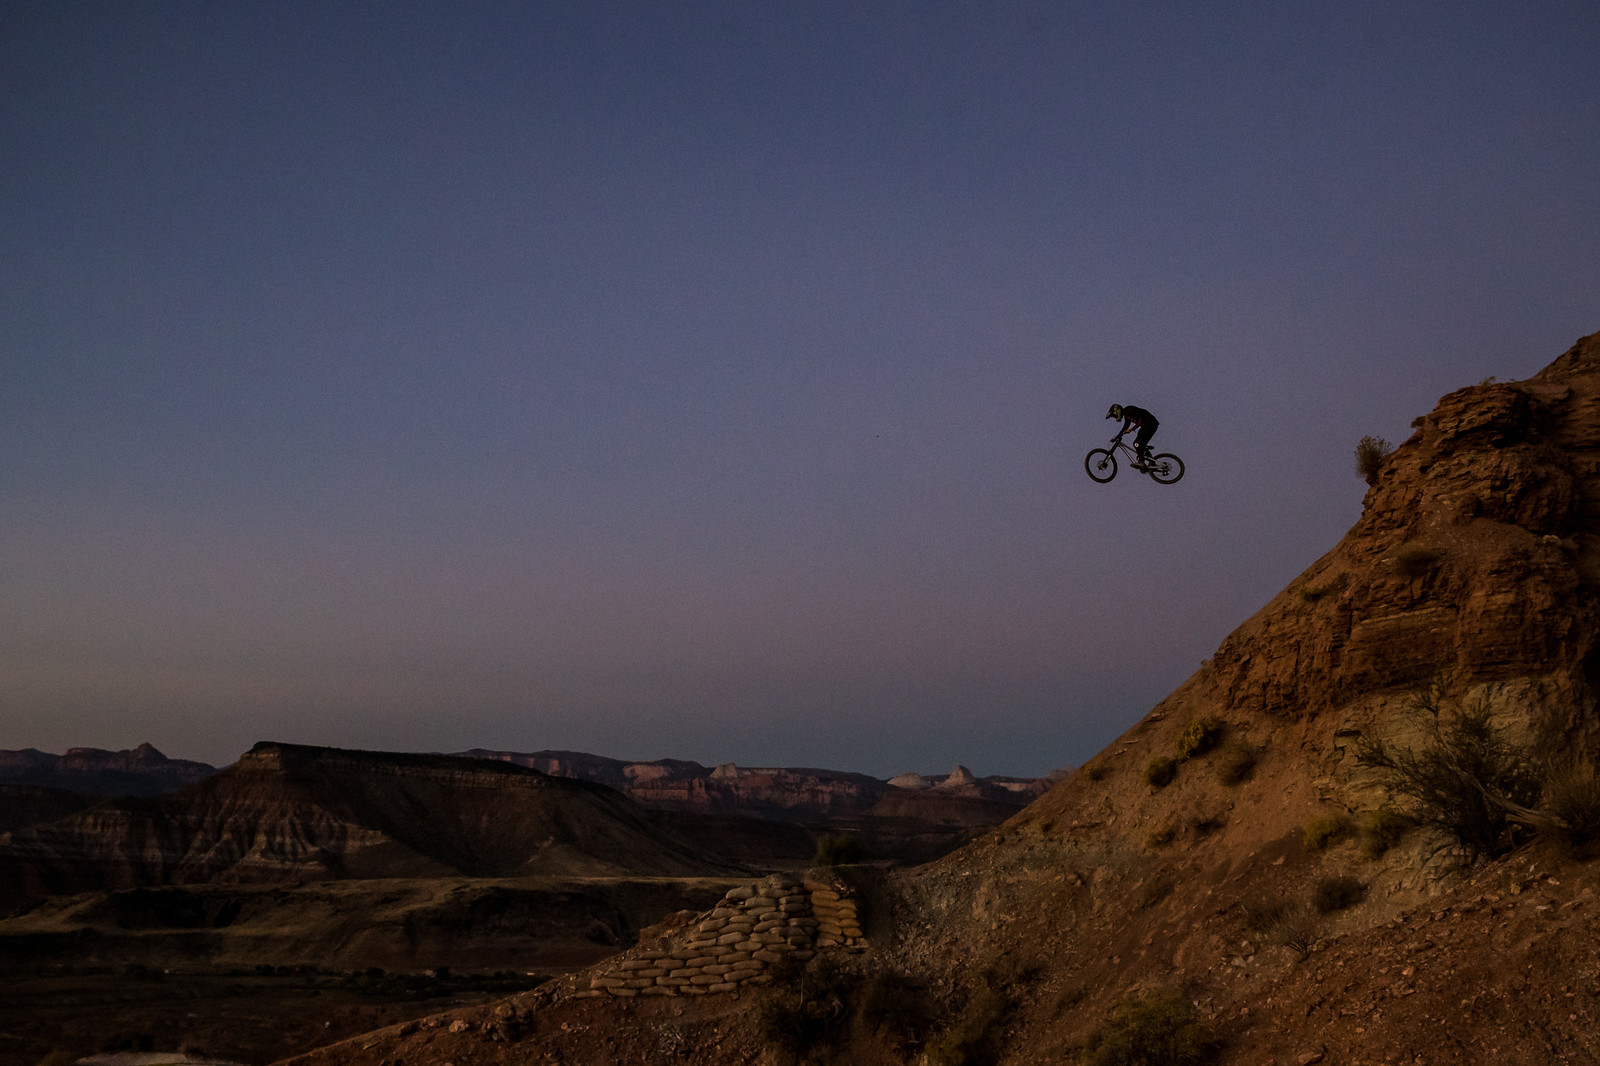 Last Light Hucking - Rampage Riding Photos from @maddogboris - Rampage Riding Action from @maddogboris - Mountain Biking Pictures - Vital MTB